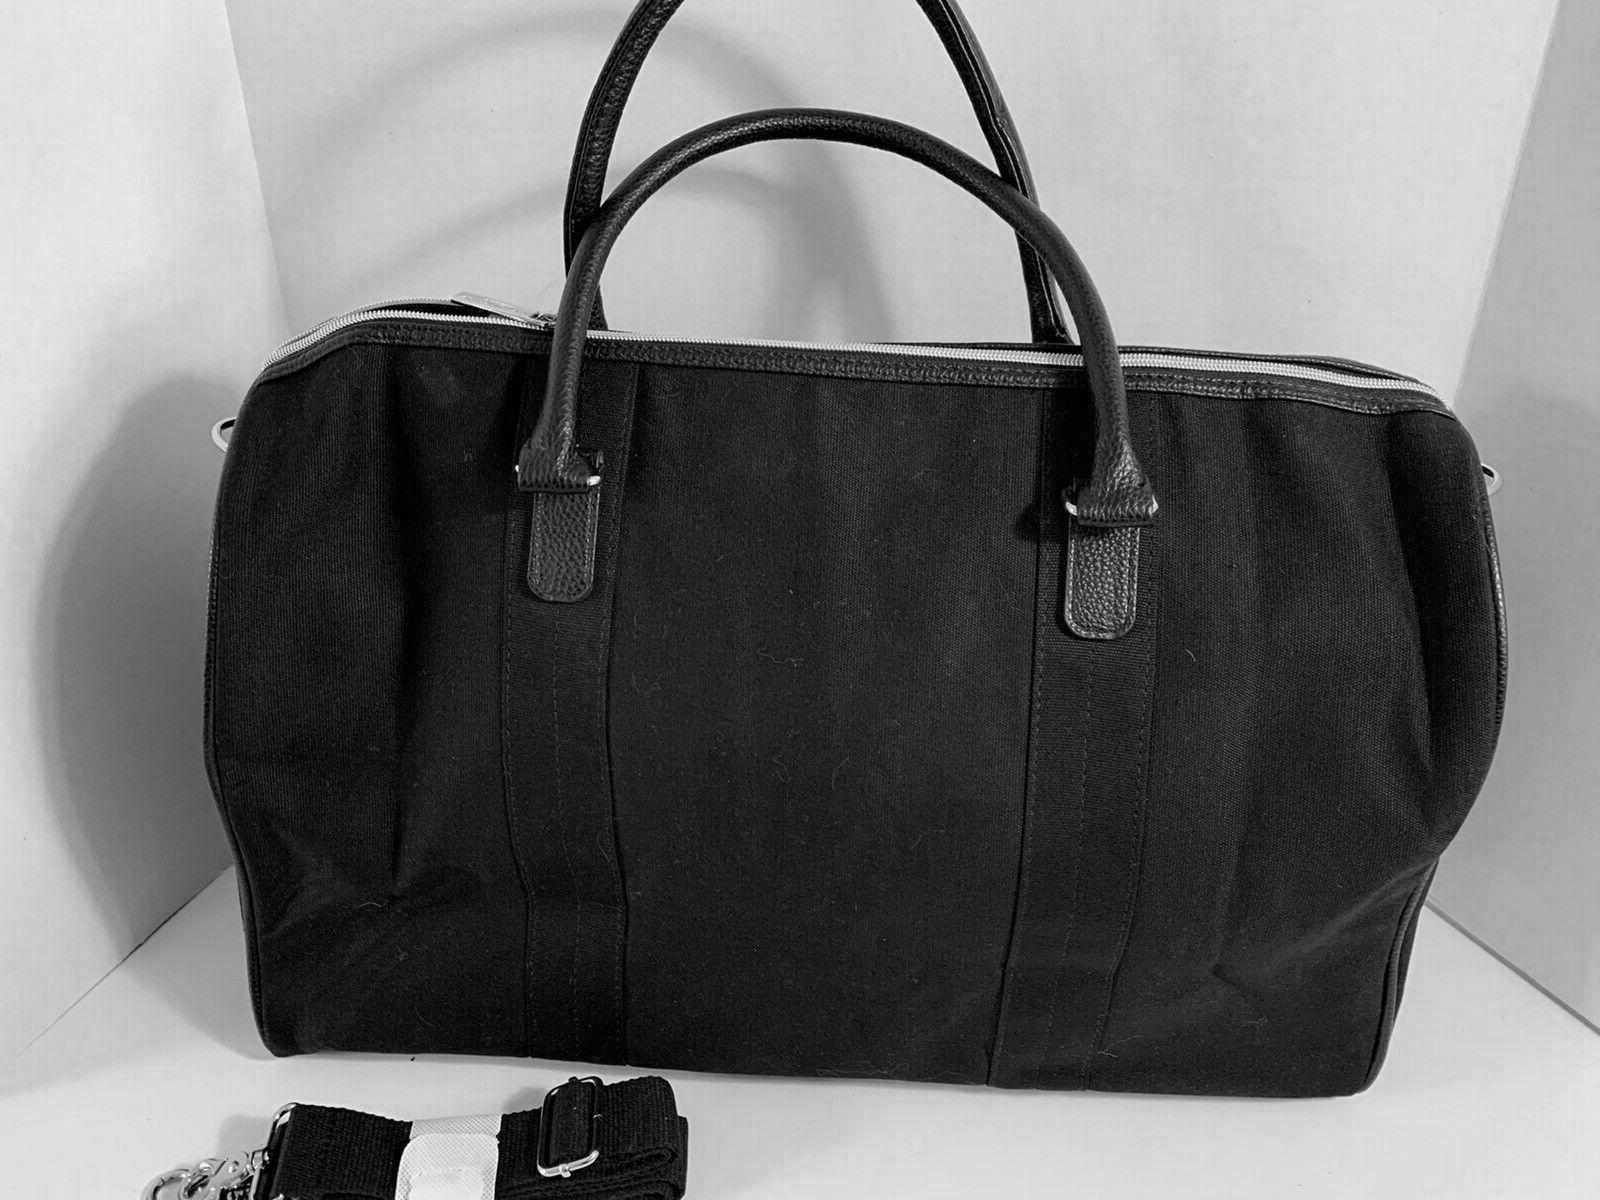 POLO Ralph WEEKENDER Overnight DUFFEL CARRY-ON BLACK